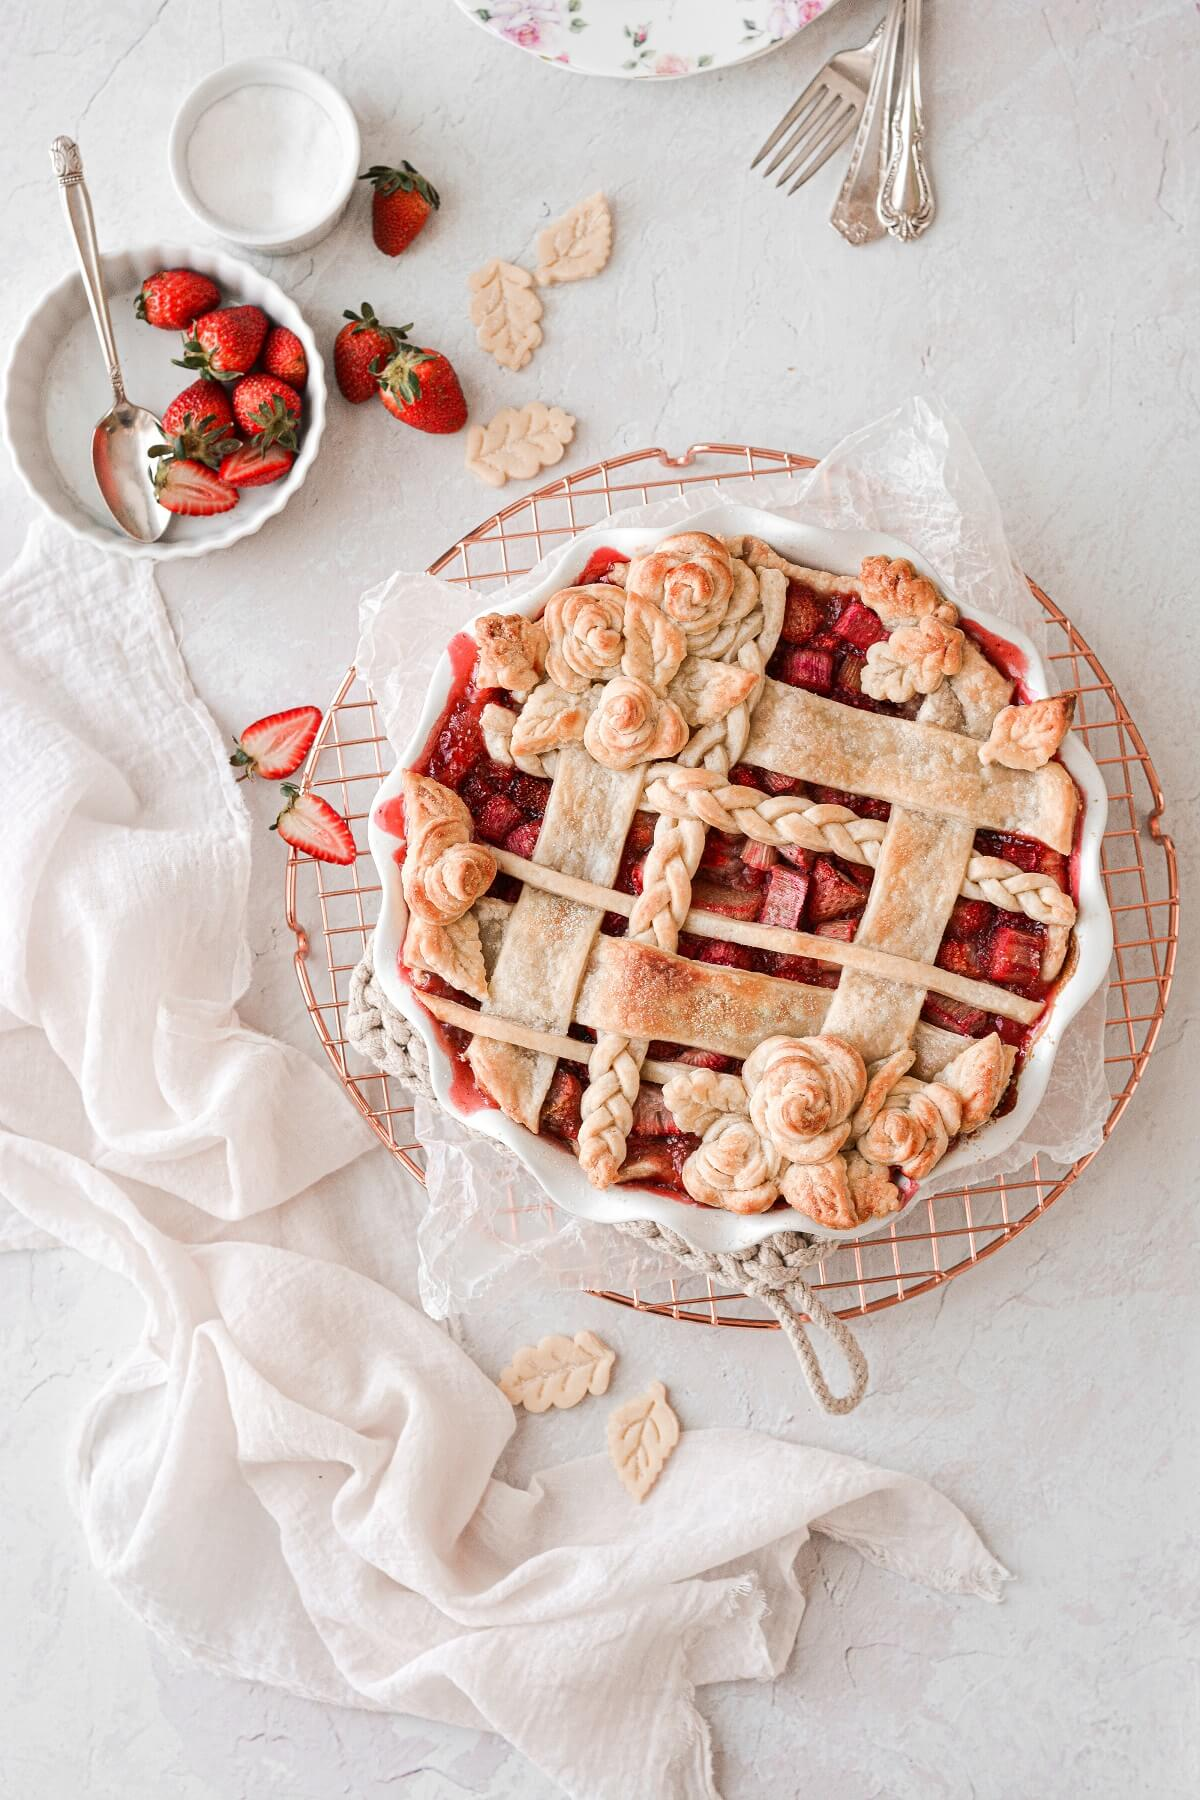 Strawberry rhubarb pie, with a lattice top and pie dough roses.